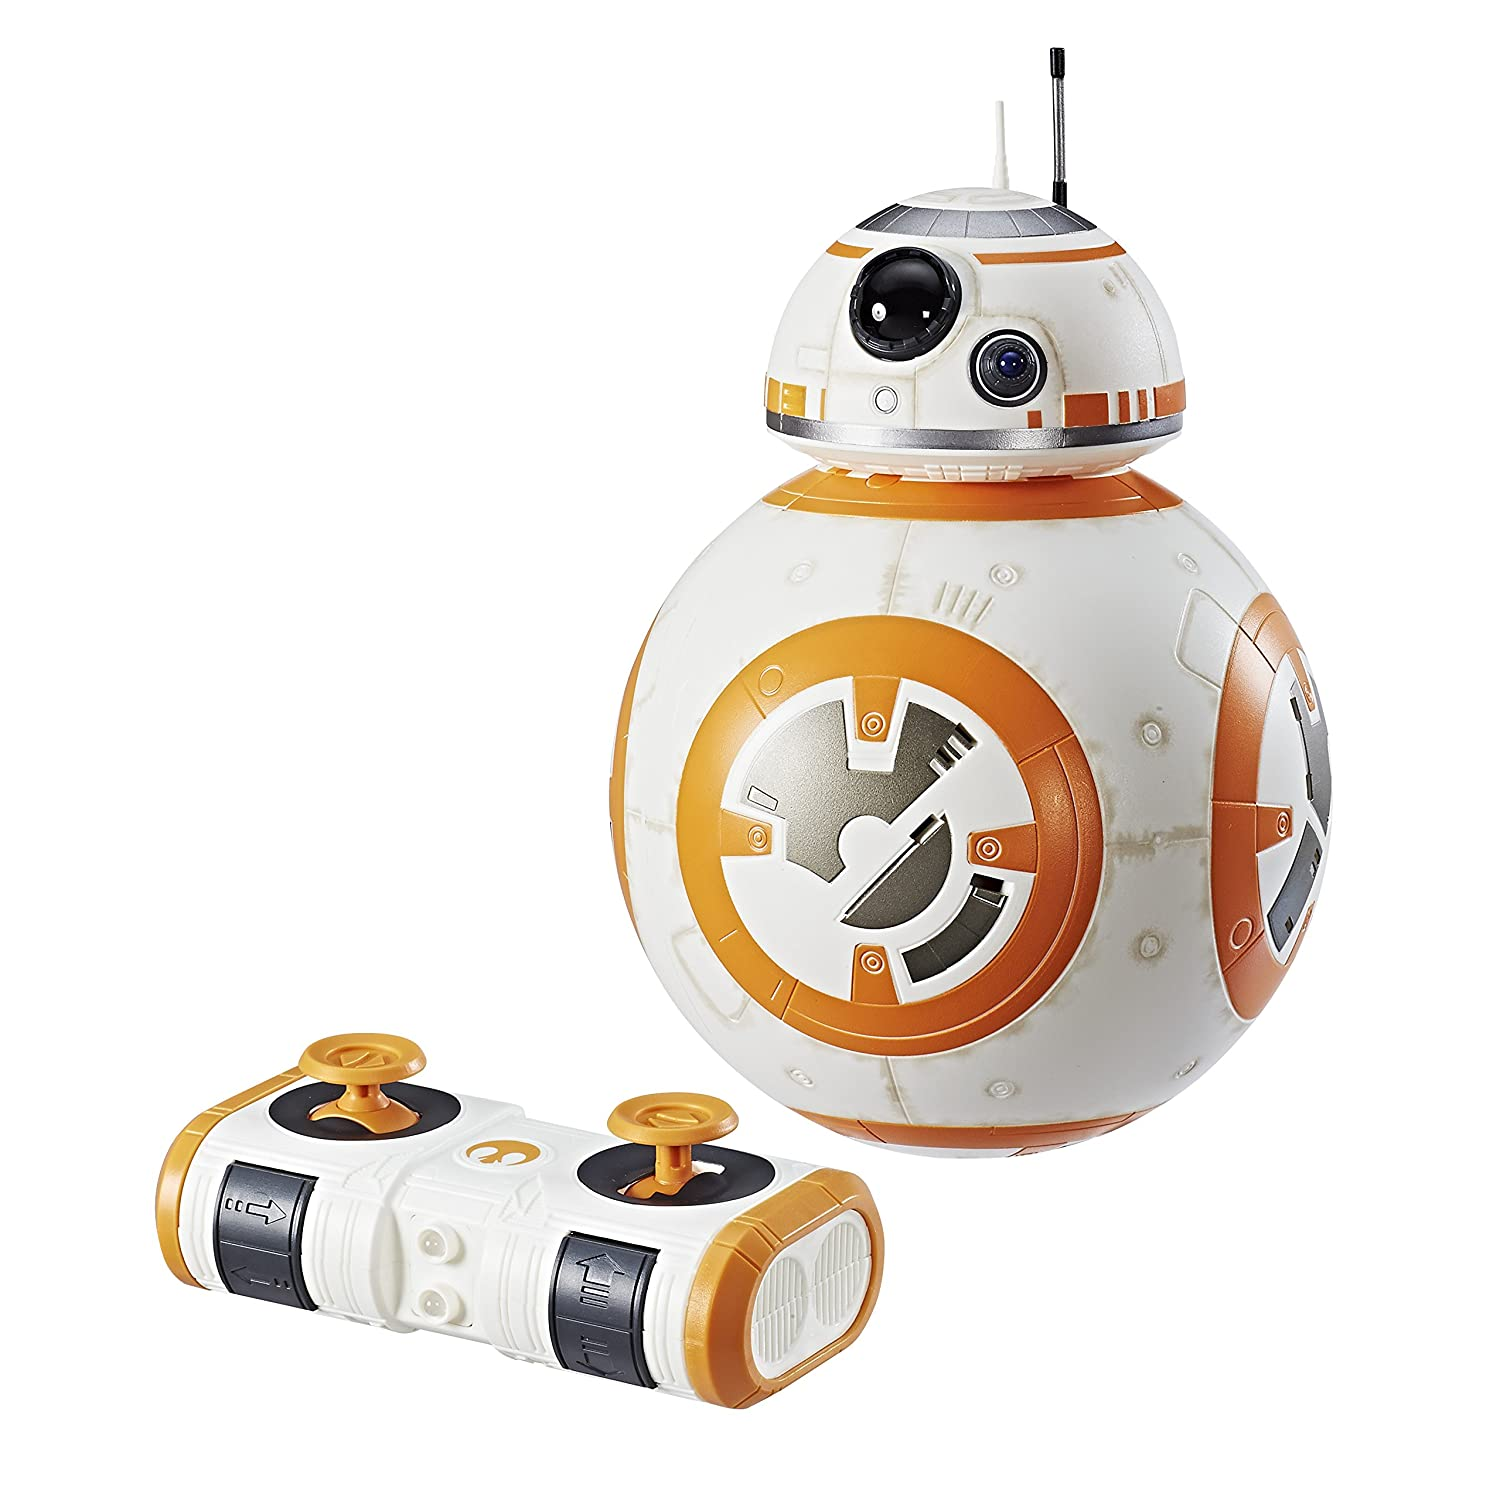 7 Best Remote Control BB8 Robot Toys Reviews of 2021 10